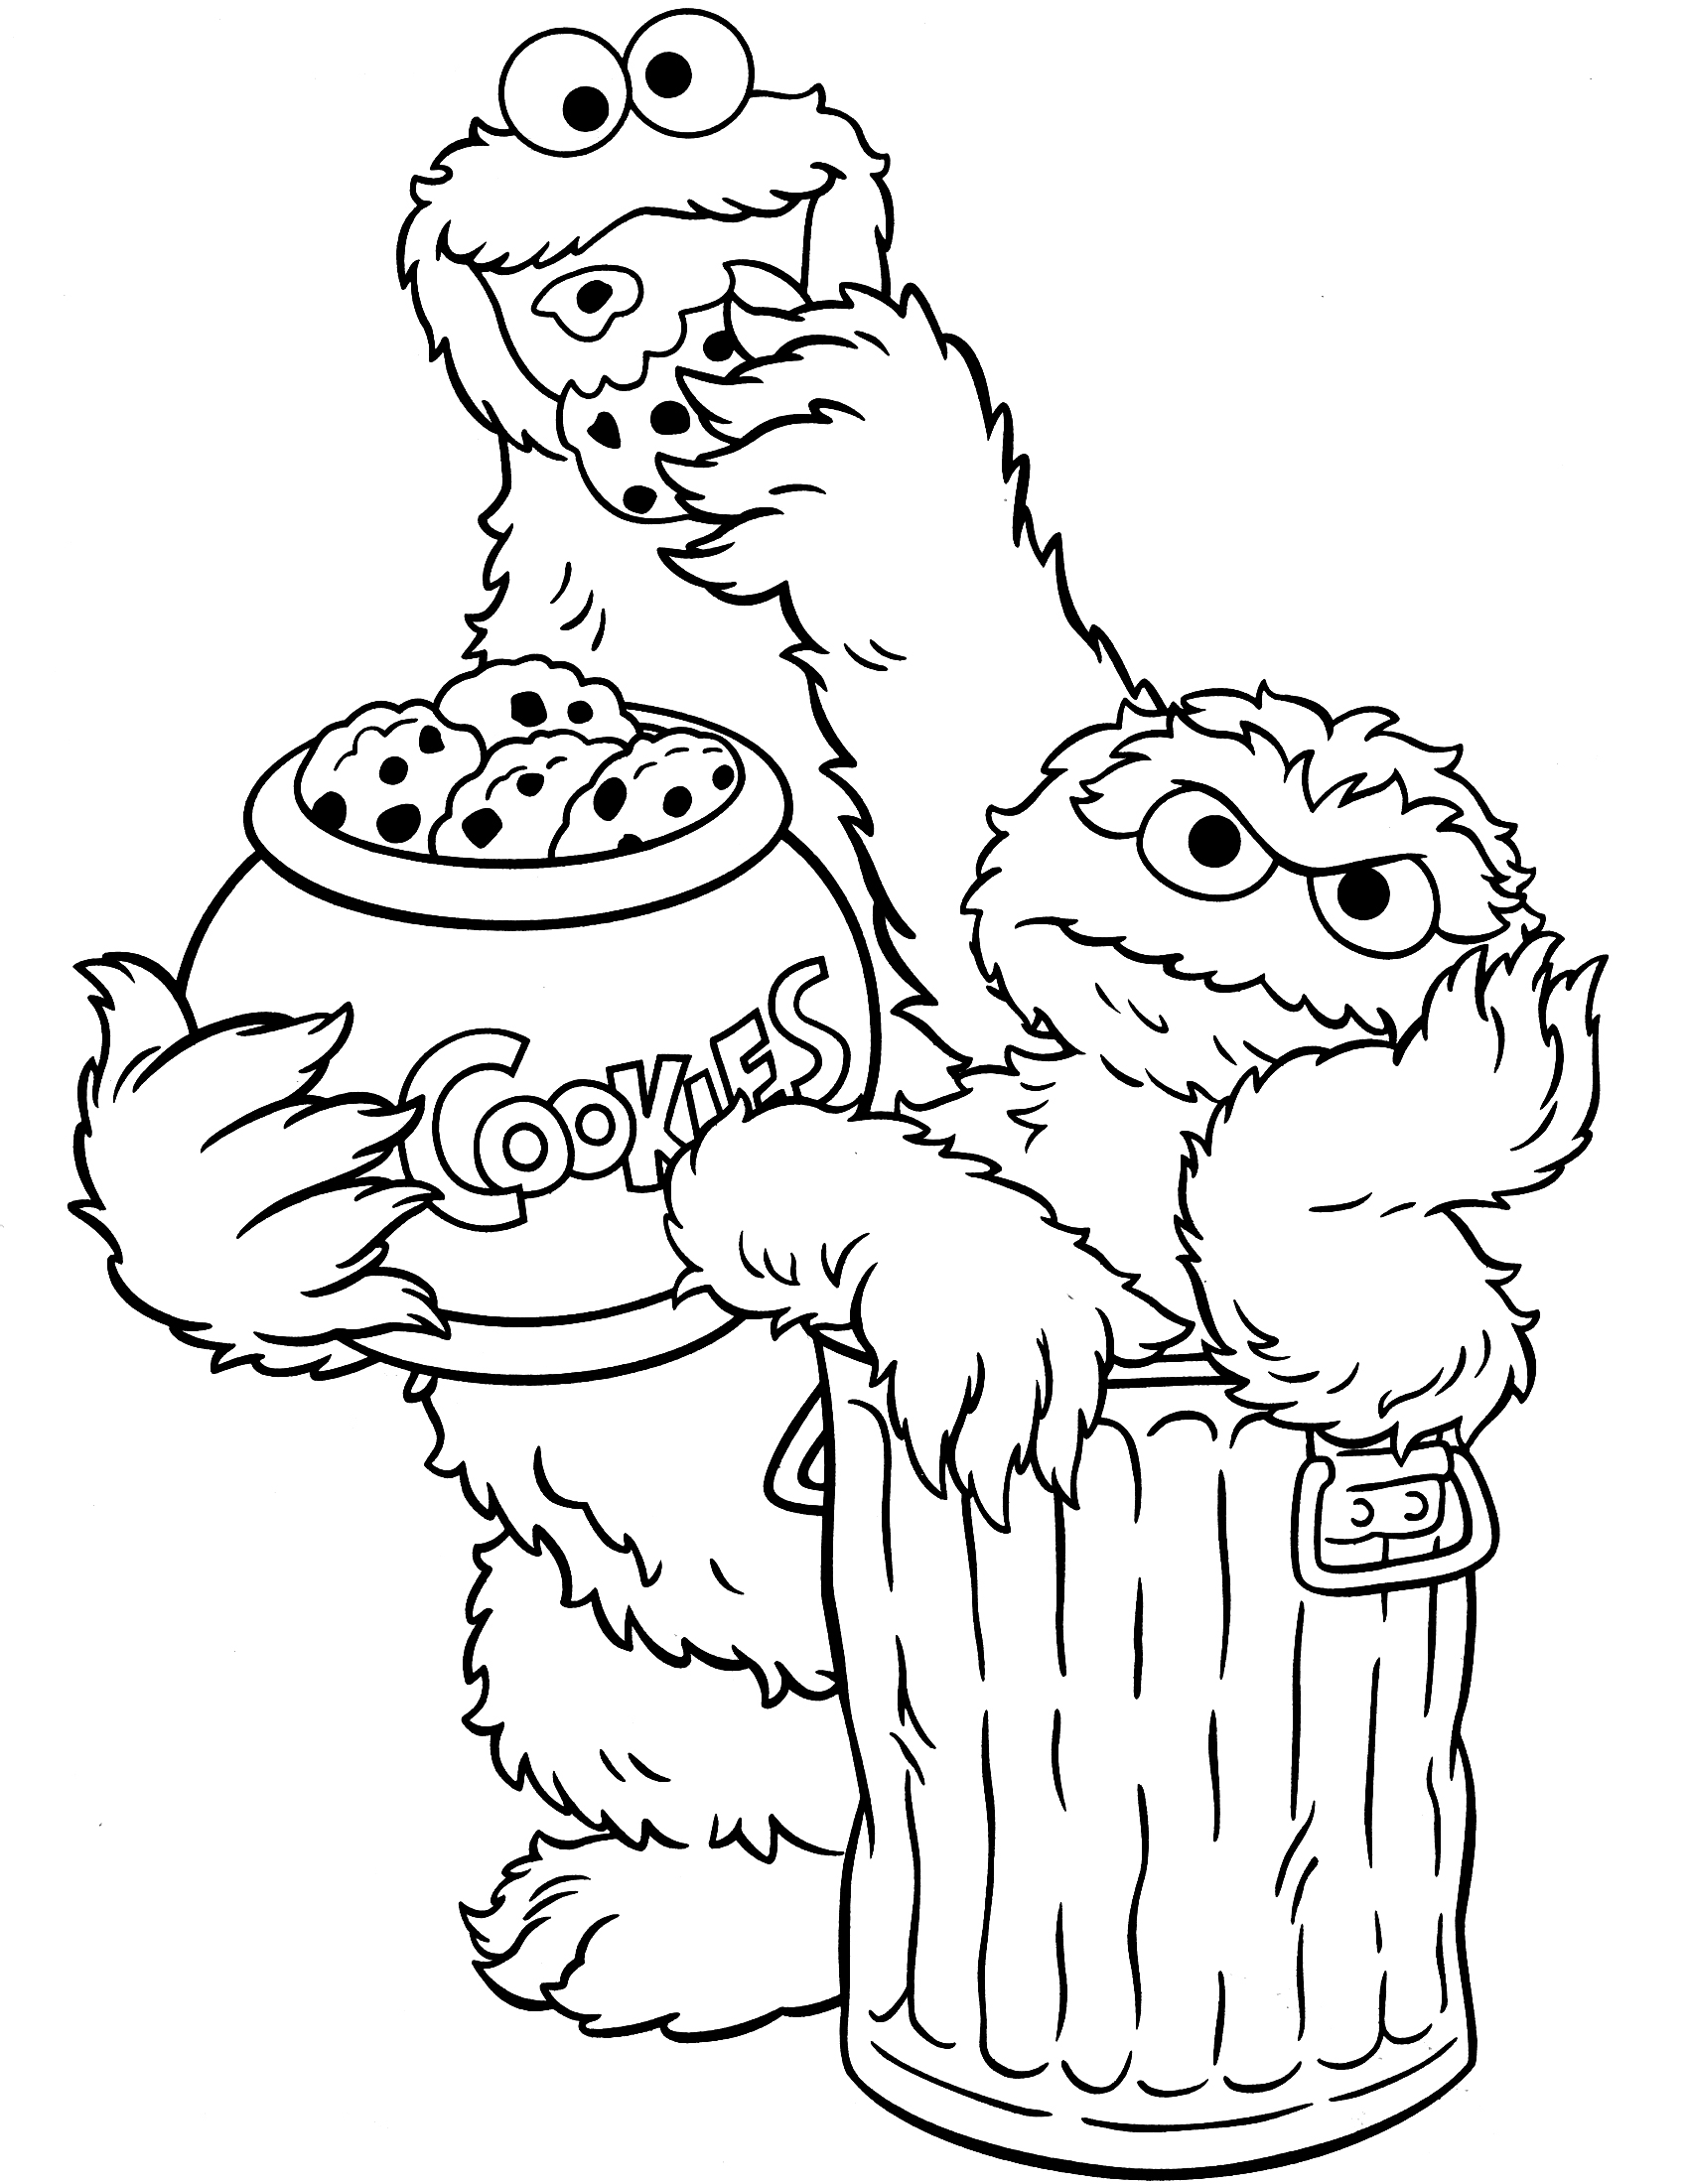 Coloring Pages Sesame Street Characters